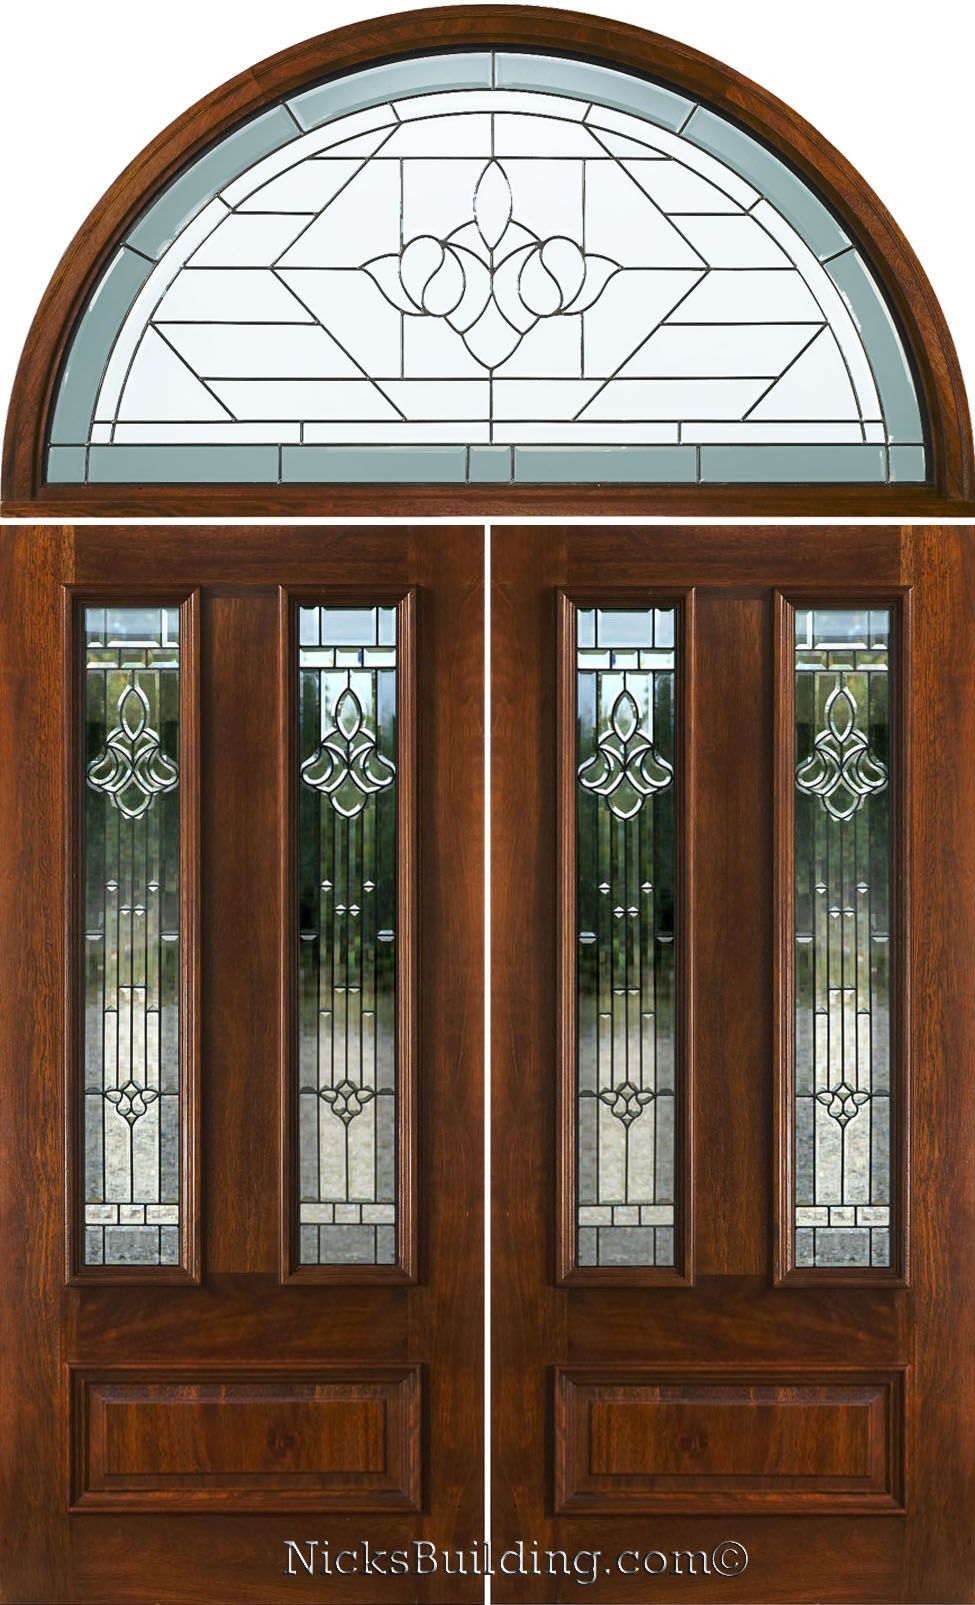 Double Doors Exterior Double Doors With Half Round Arched Transoms